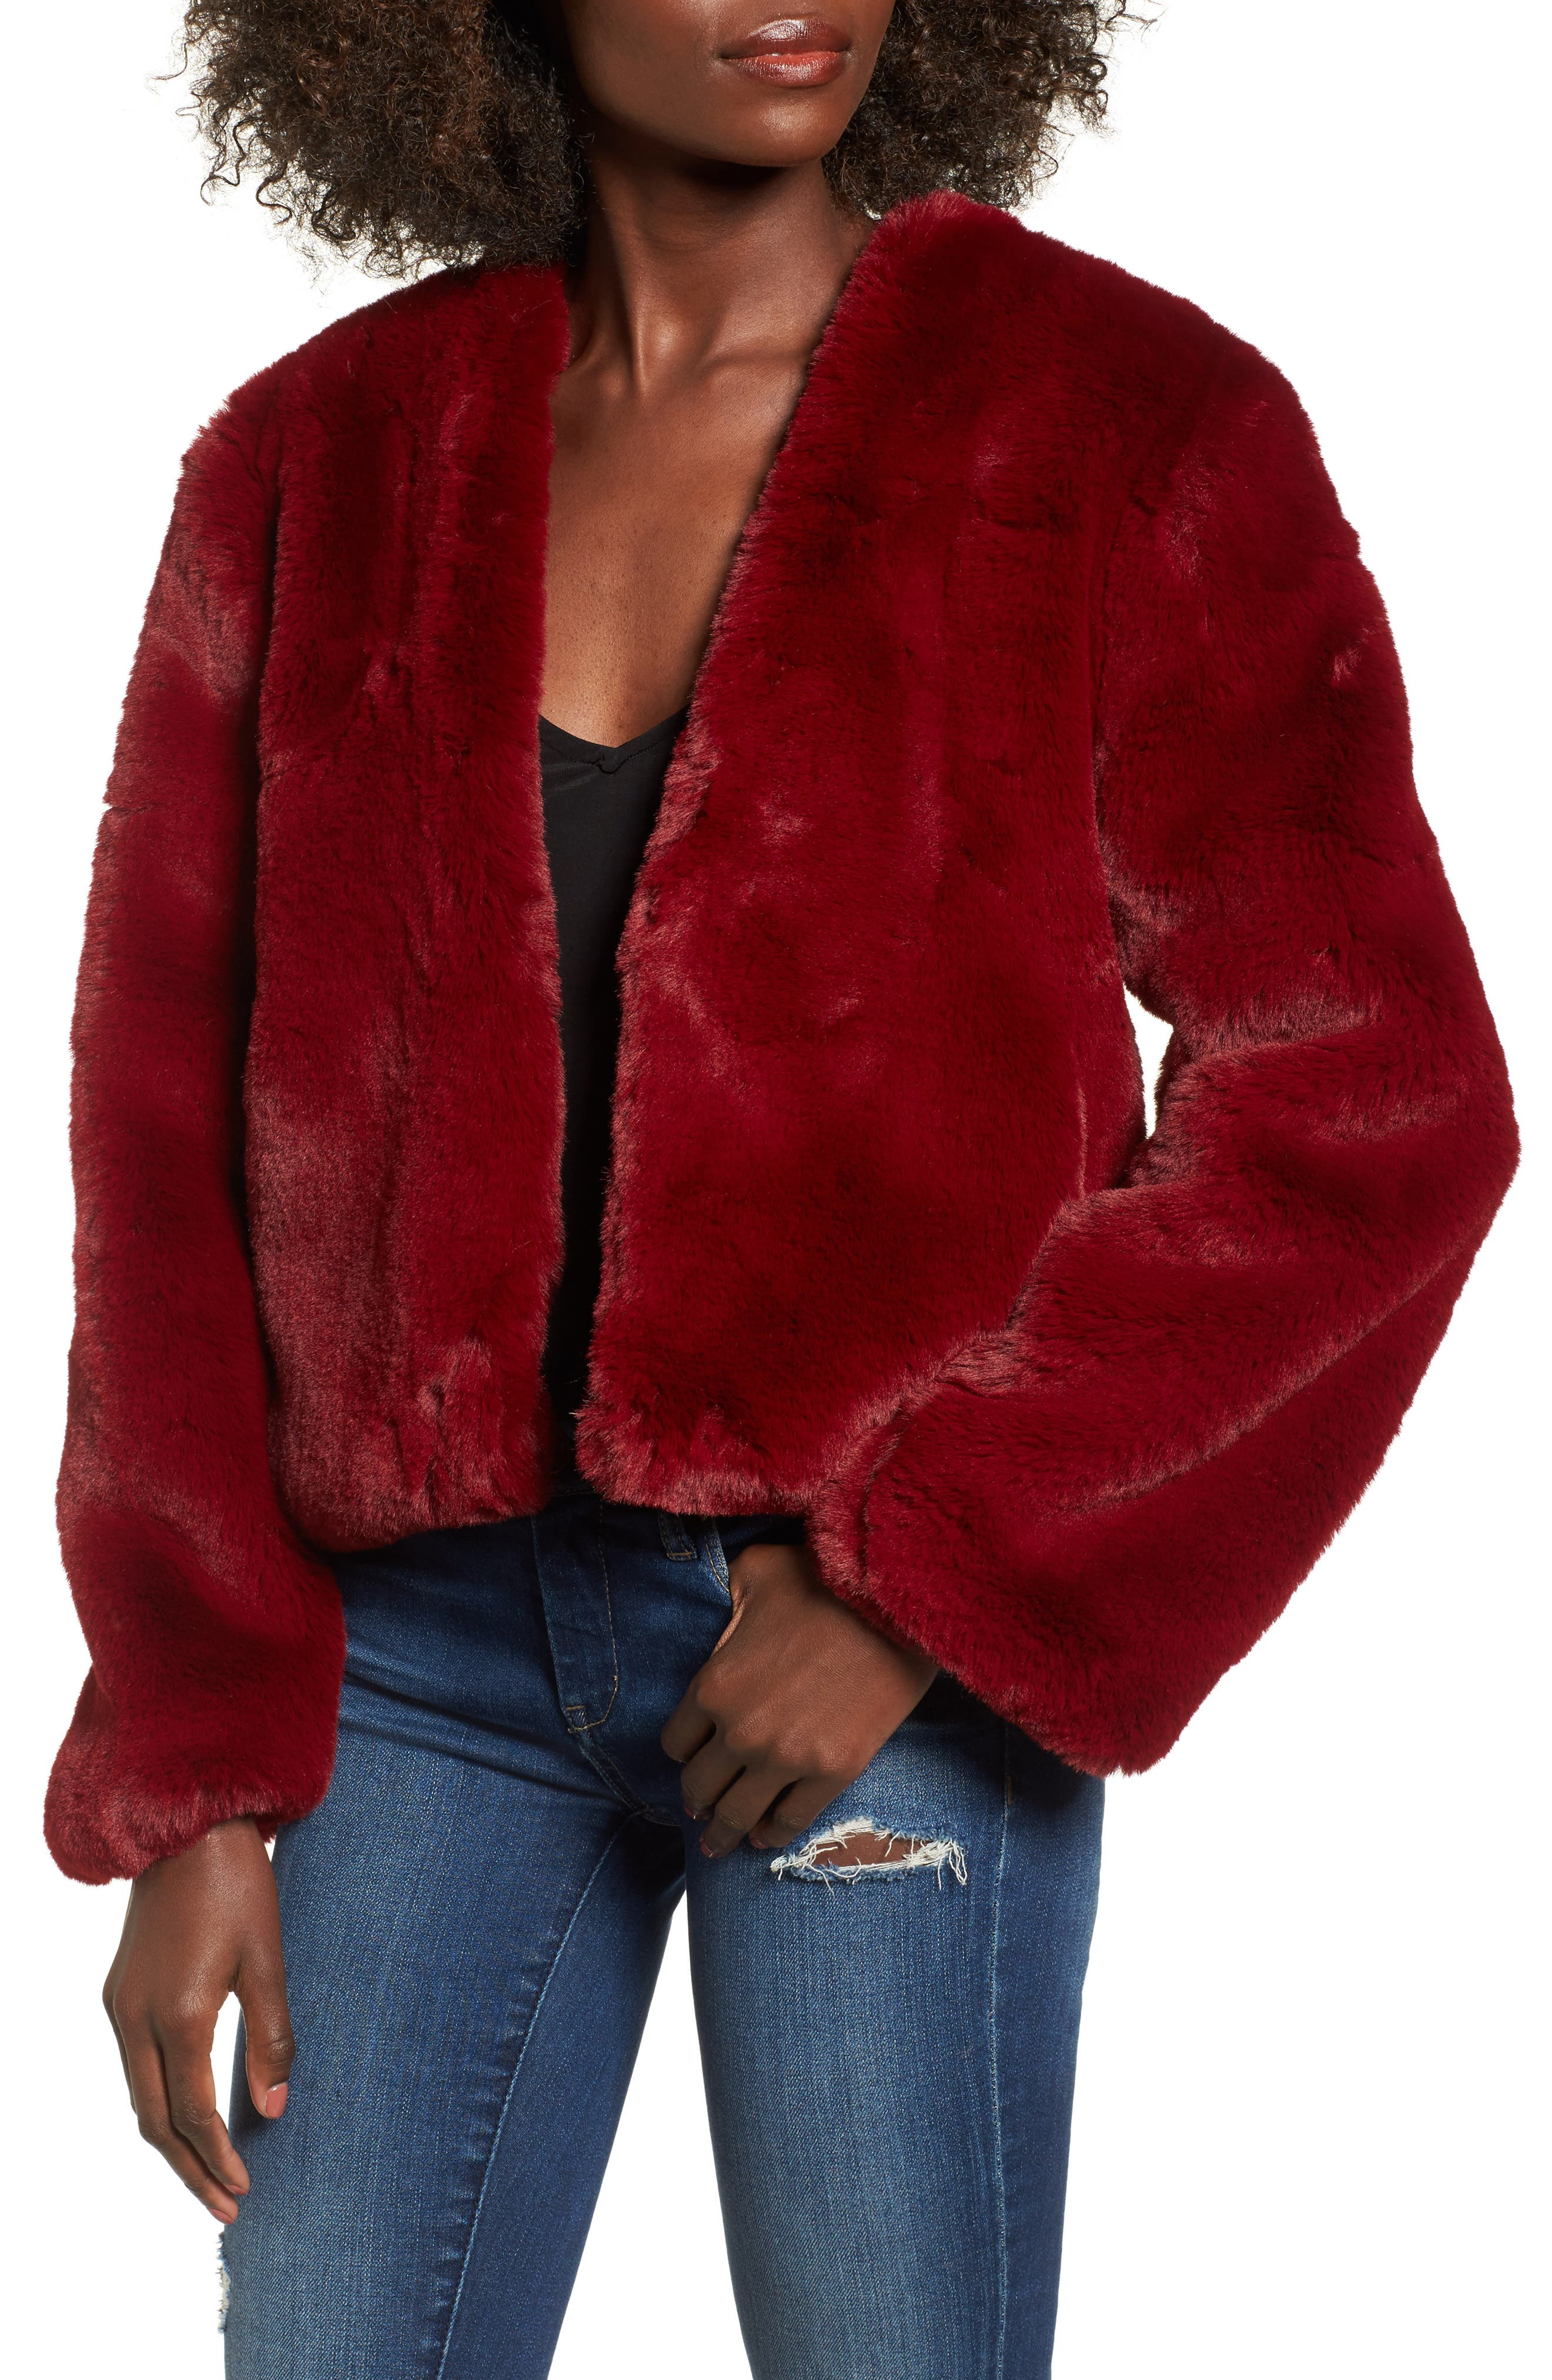 Lonely Hearts Faux Fur Jacket,                             Main thumbnail 1, color,                             Ruby